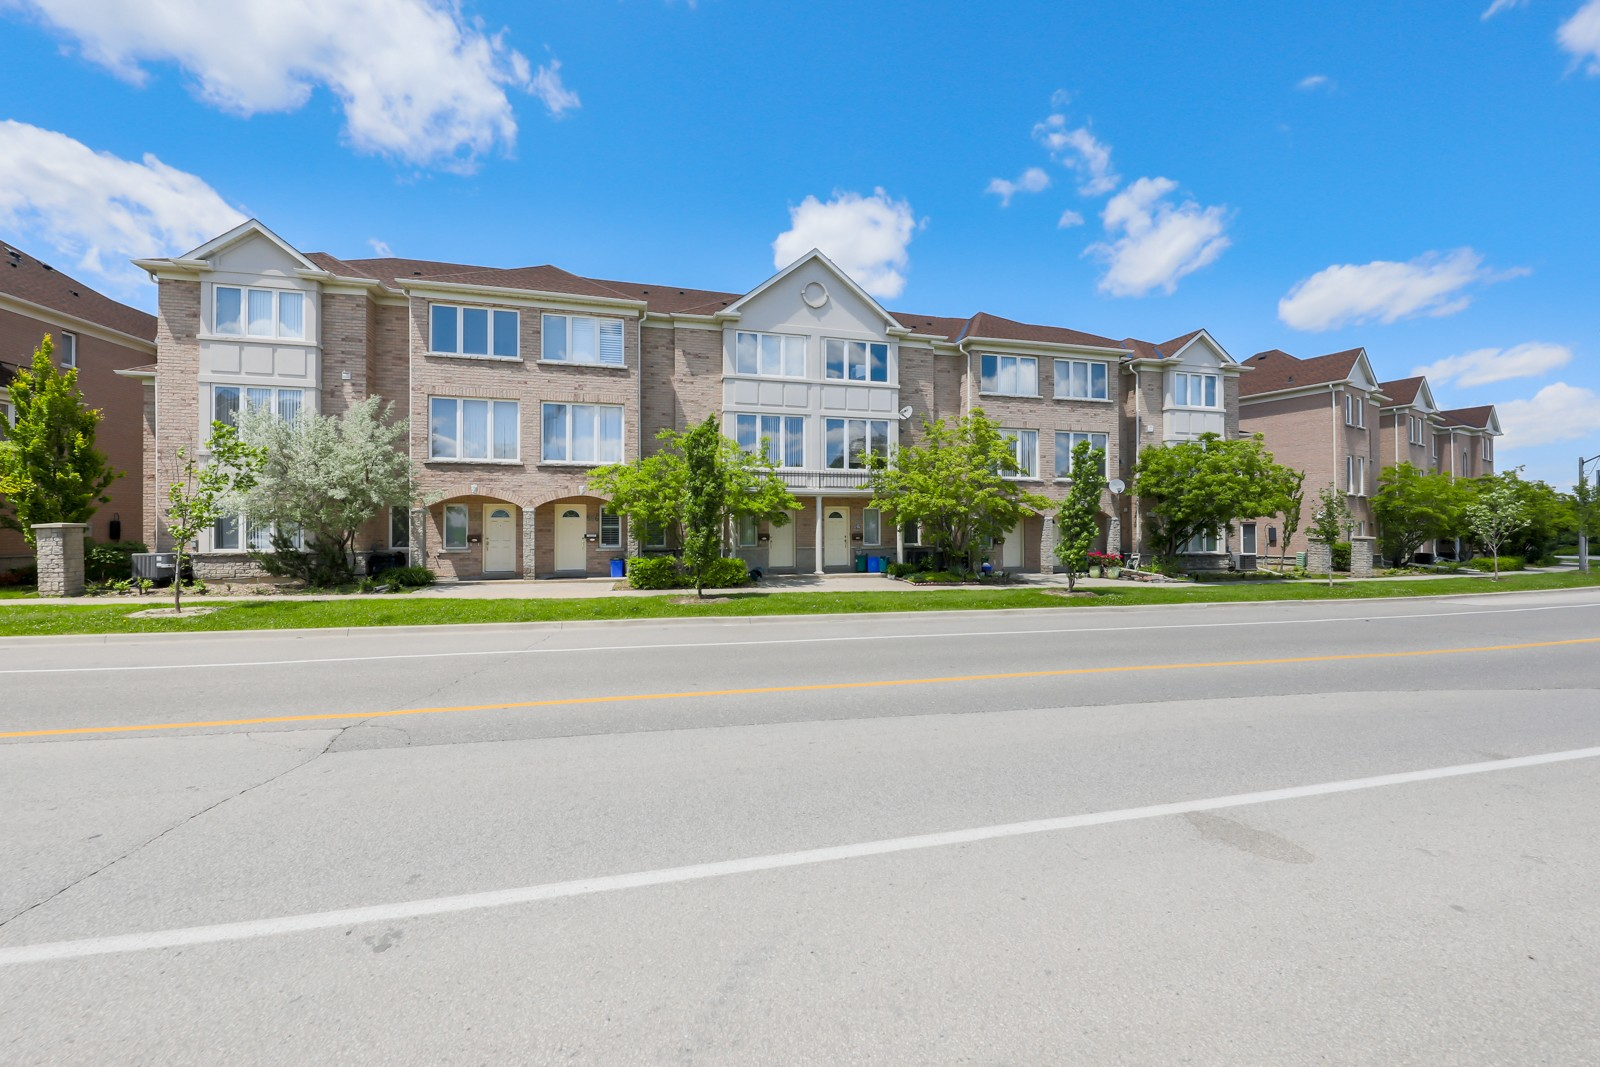 368 South Park Rd Townhouses at 30 Leitchcroft Crescent, Markham 1